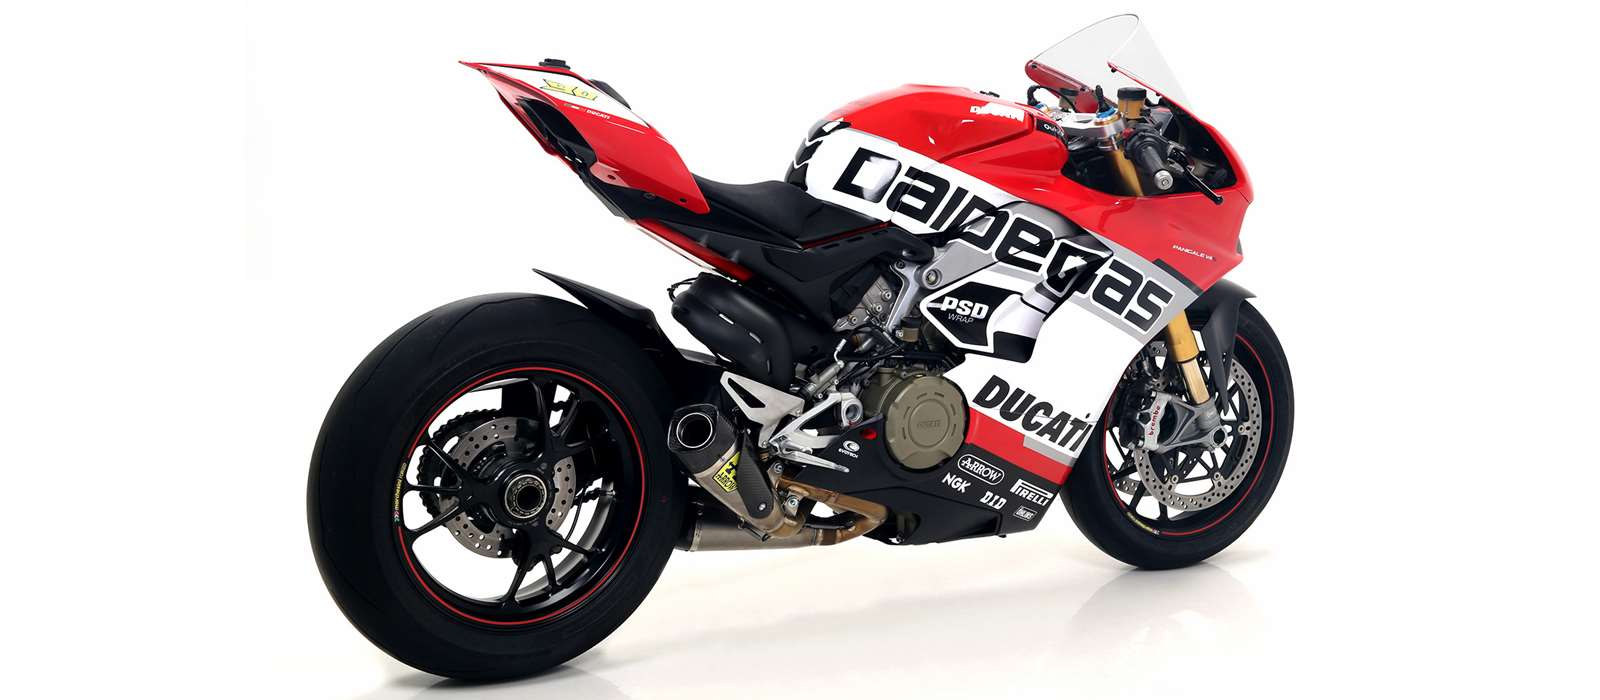 Ducati Panigale V4/S, Exhaust, Arrow Exhausts - Race and Trackday Parts